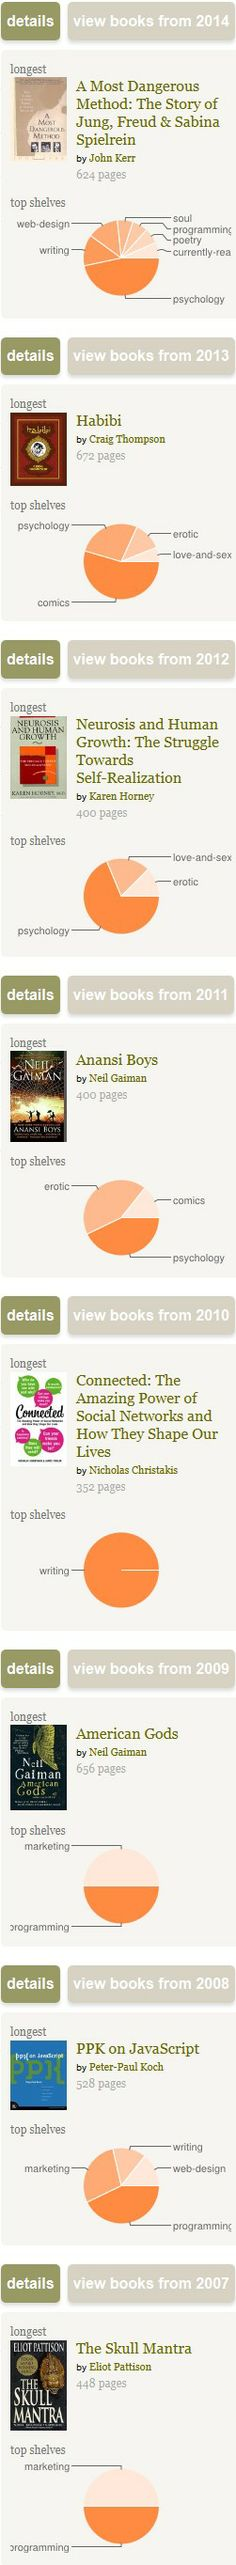 Infographics about my reading taste. via goodreads.com